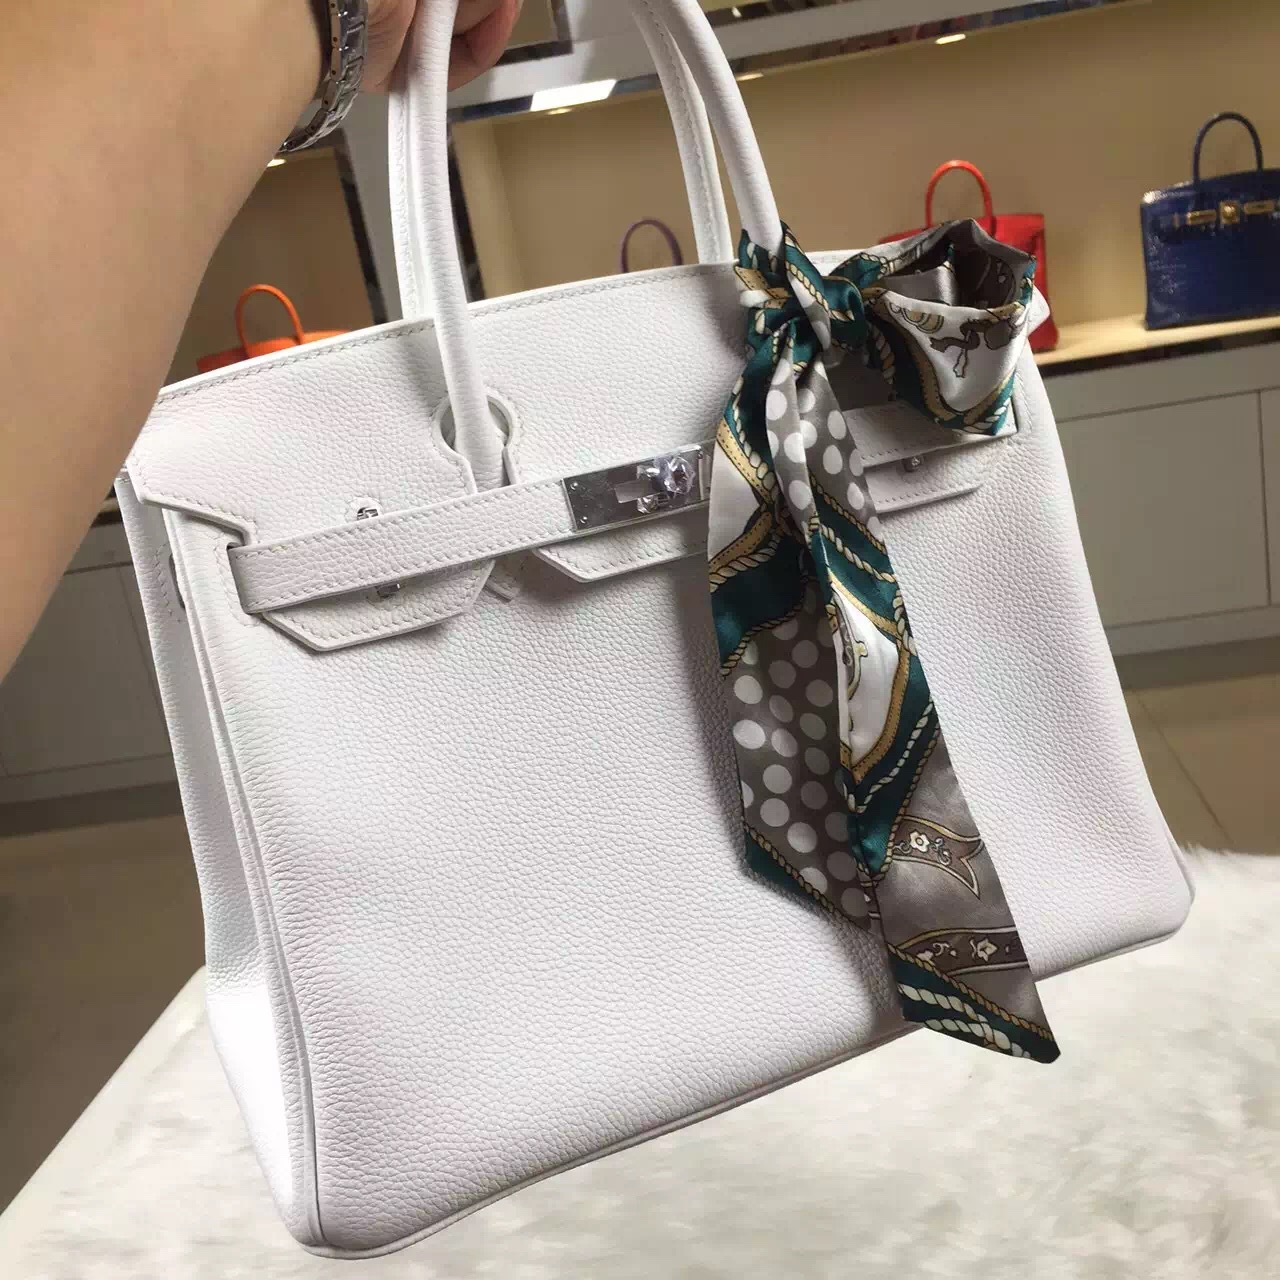 Luxury Hermes 01 Pure White Togo Leather Birkin Bag 30CM Women's Handbag